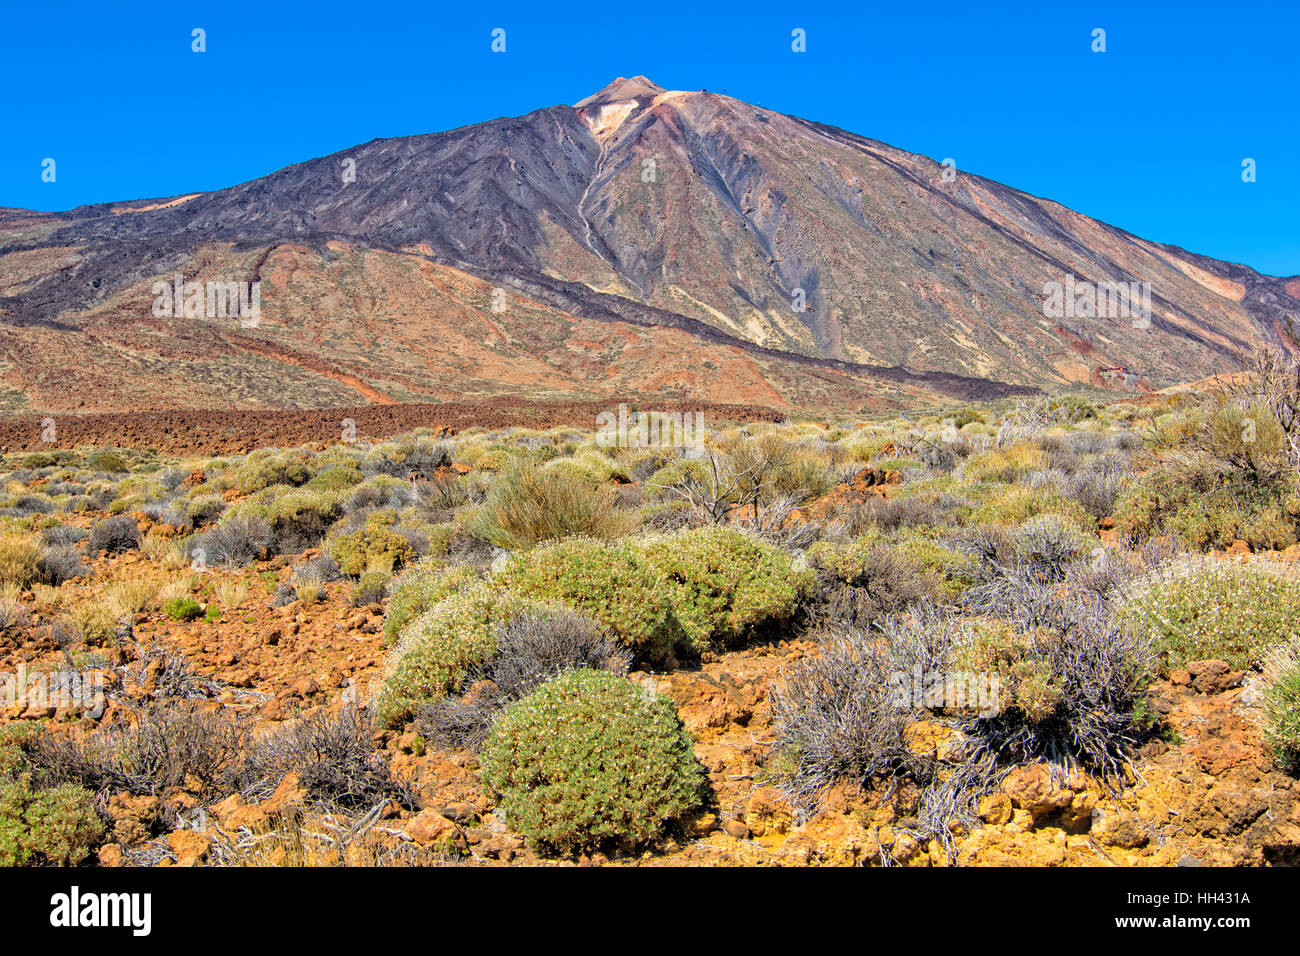 Mount Teide im Teide-Nationalpark, Teneriffa Stockbild